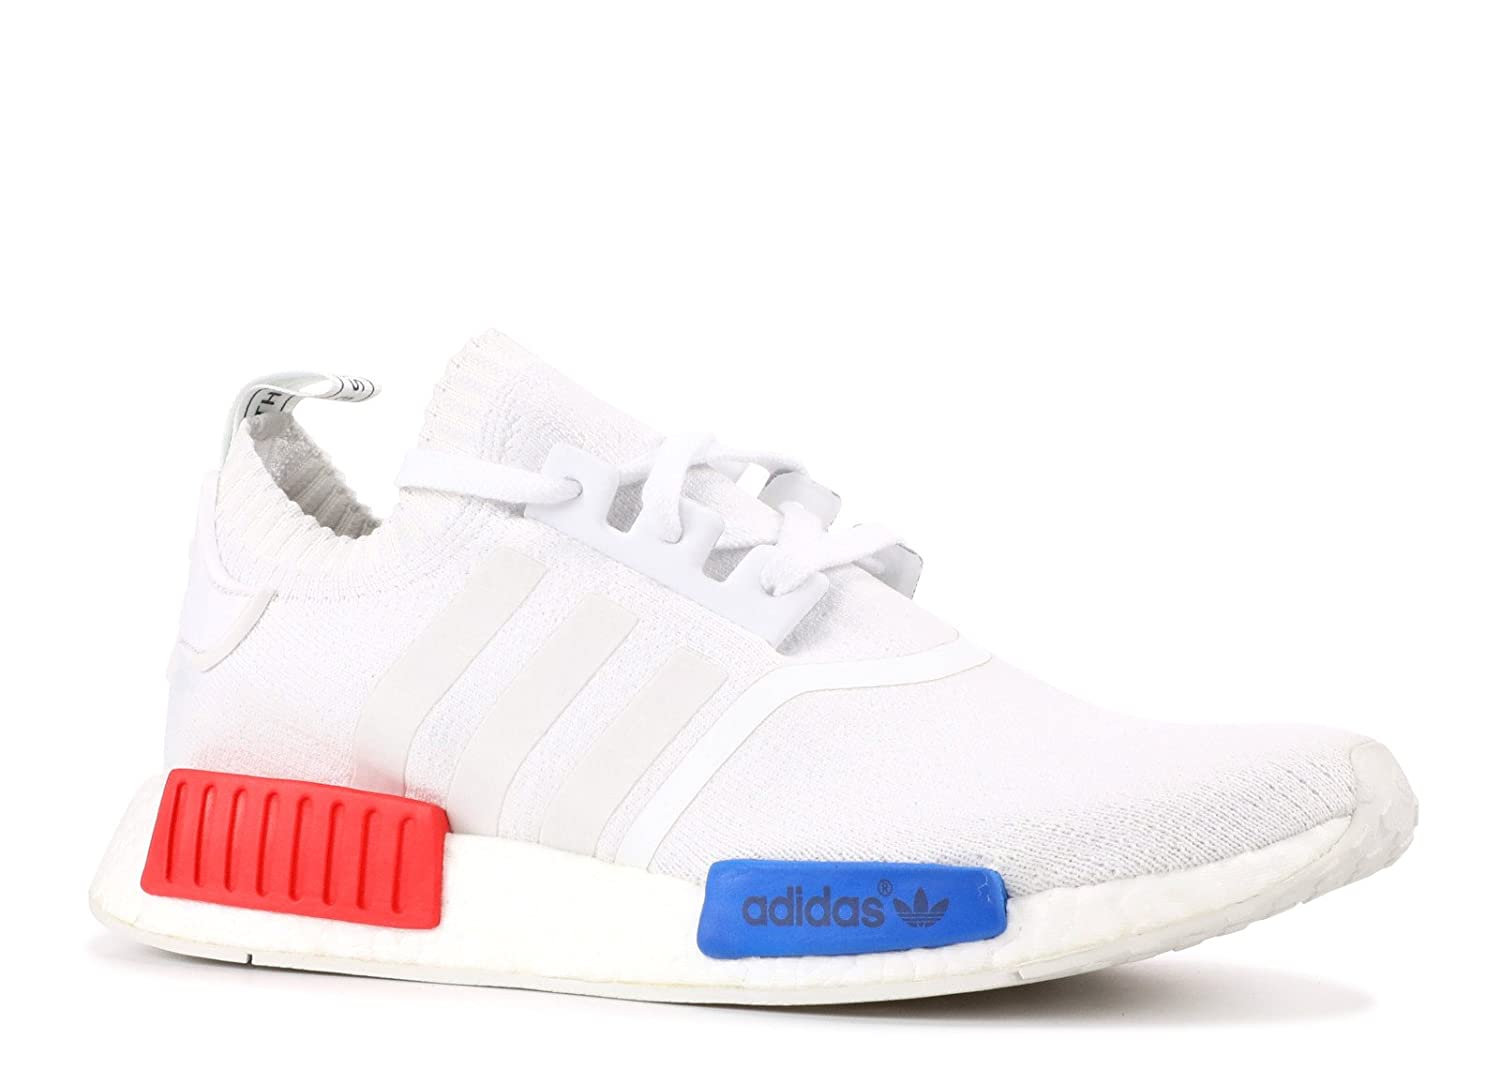 super cute b86fc 4bf41 Amazon.com  adidas NMD Runner Pk - S79482 - Size 11 White, Red, Blue   Athletic